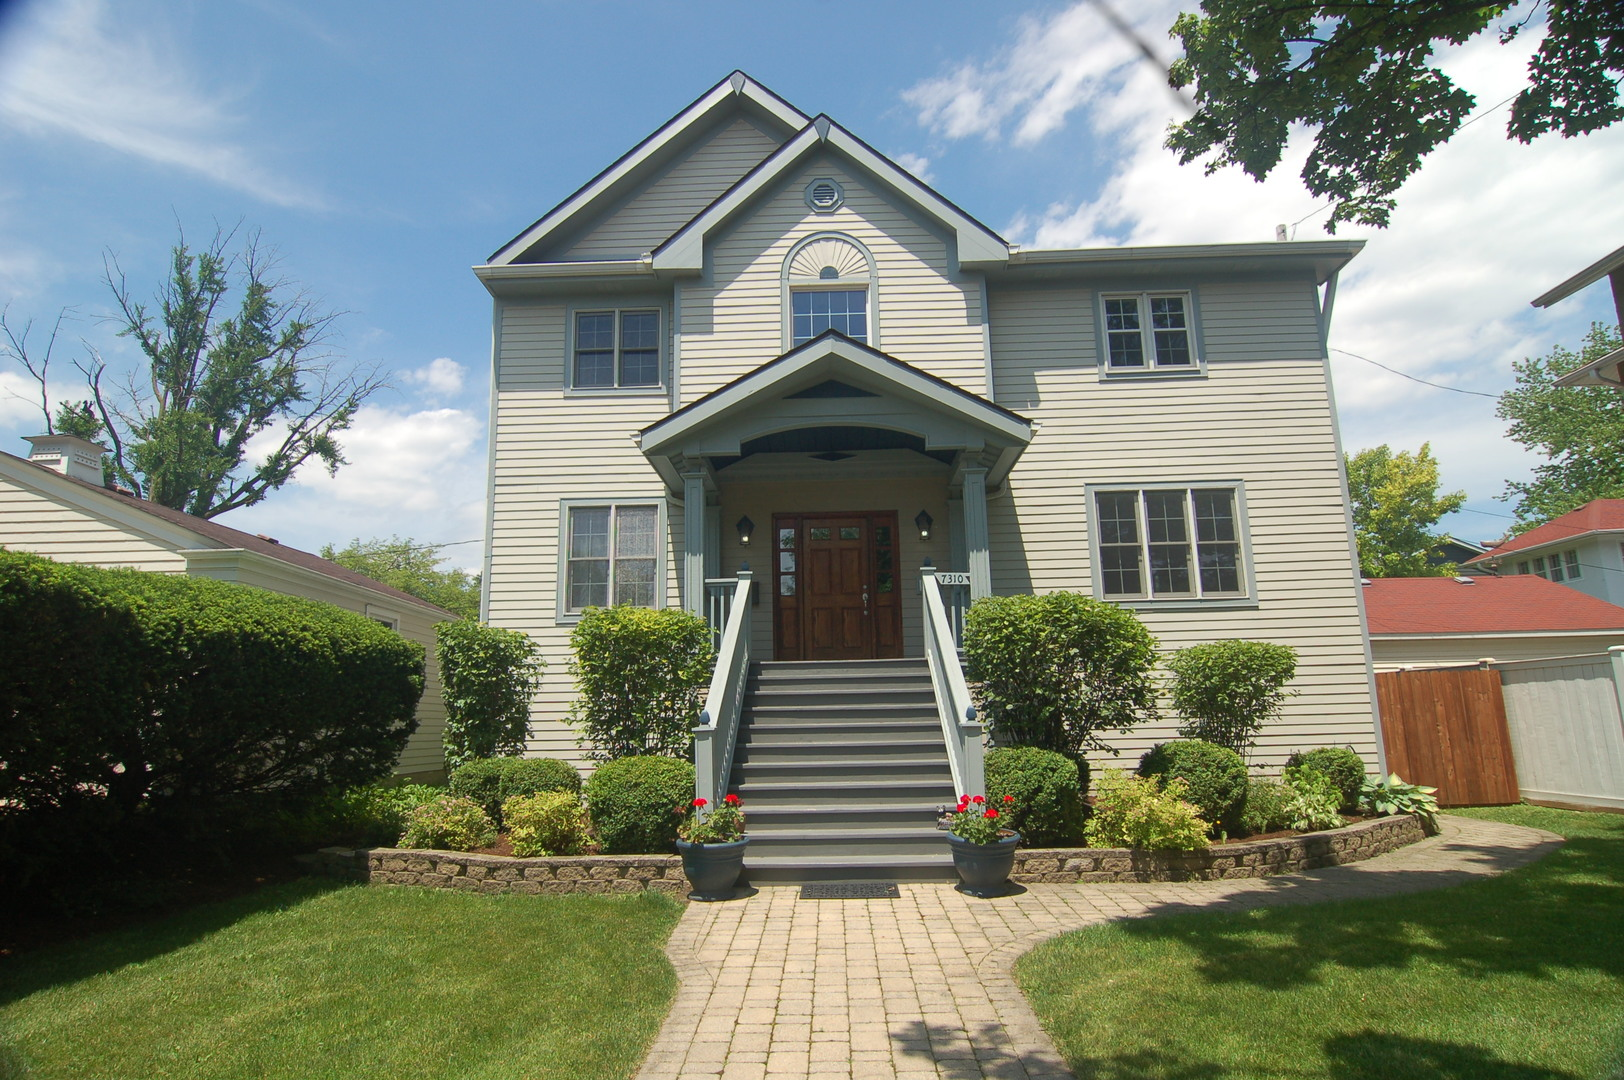 5 House in River Forest